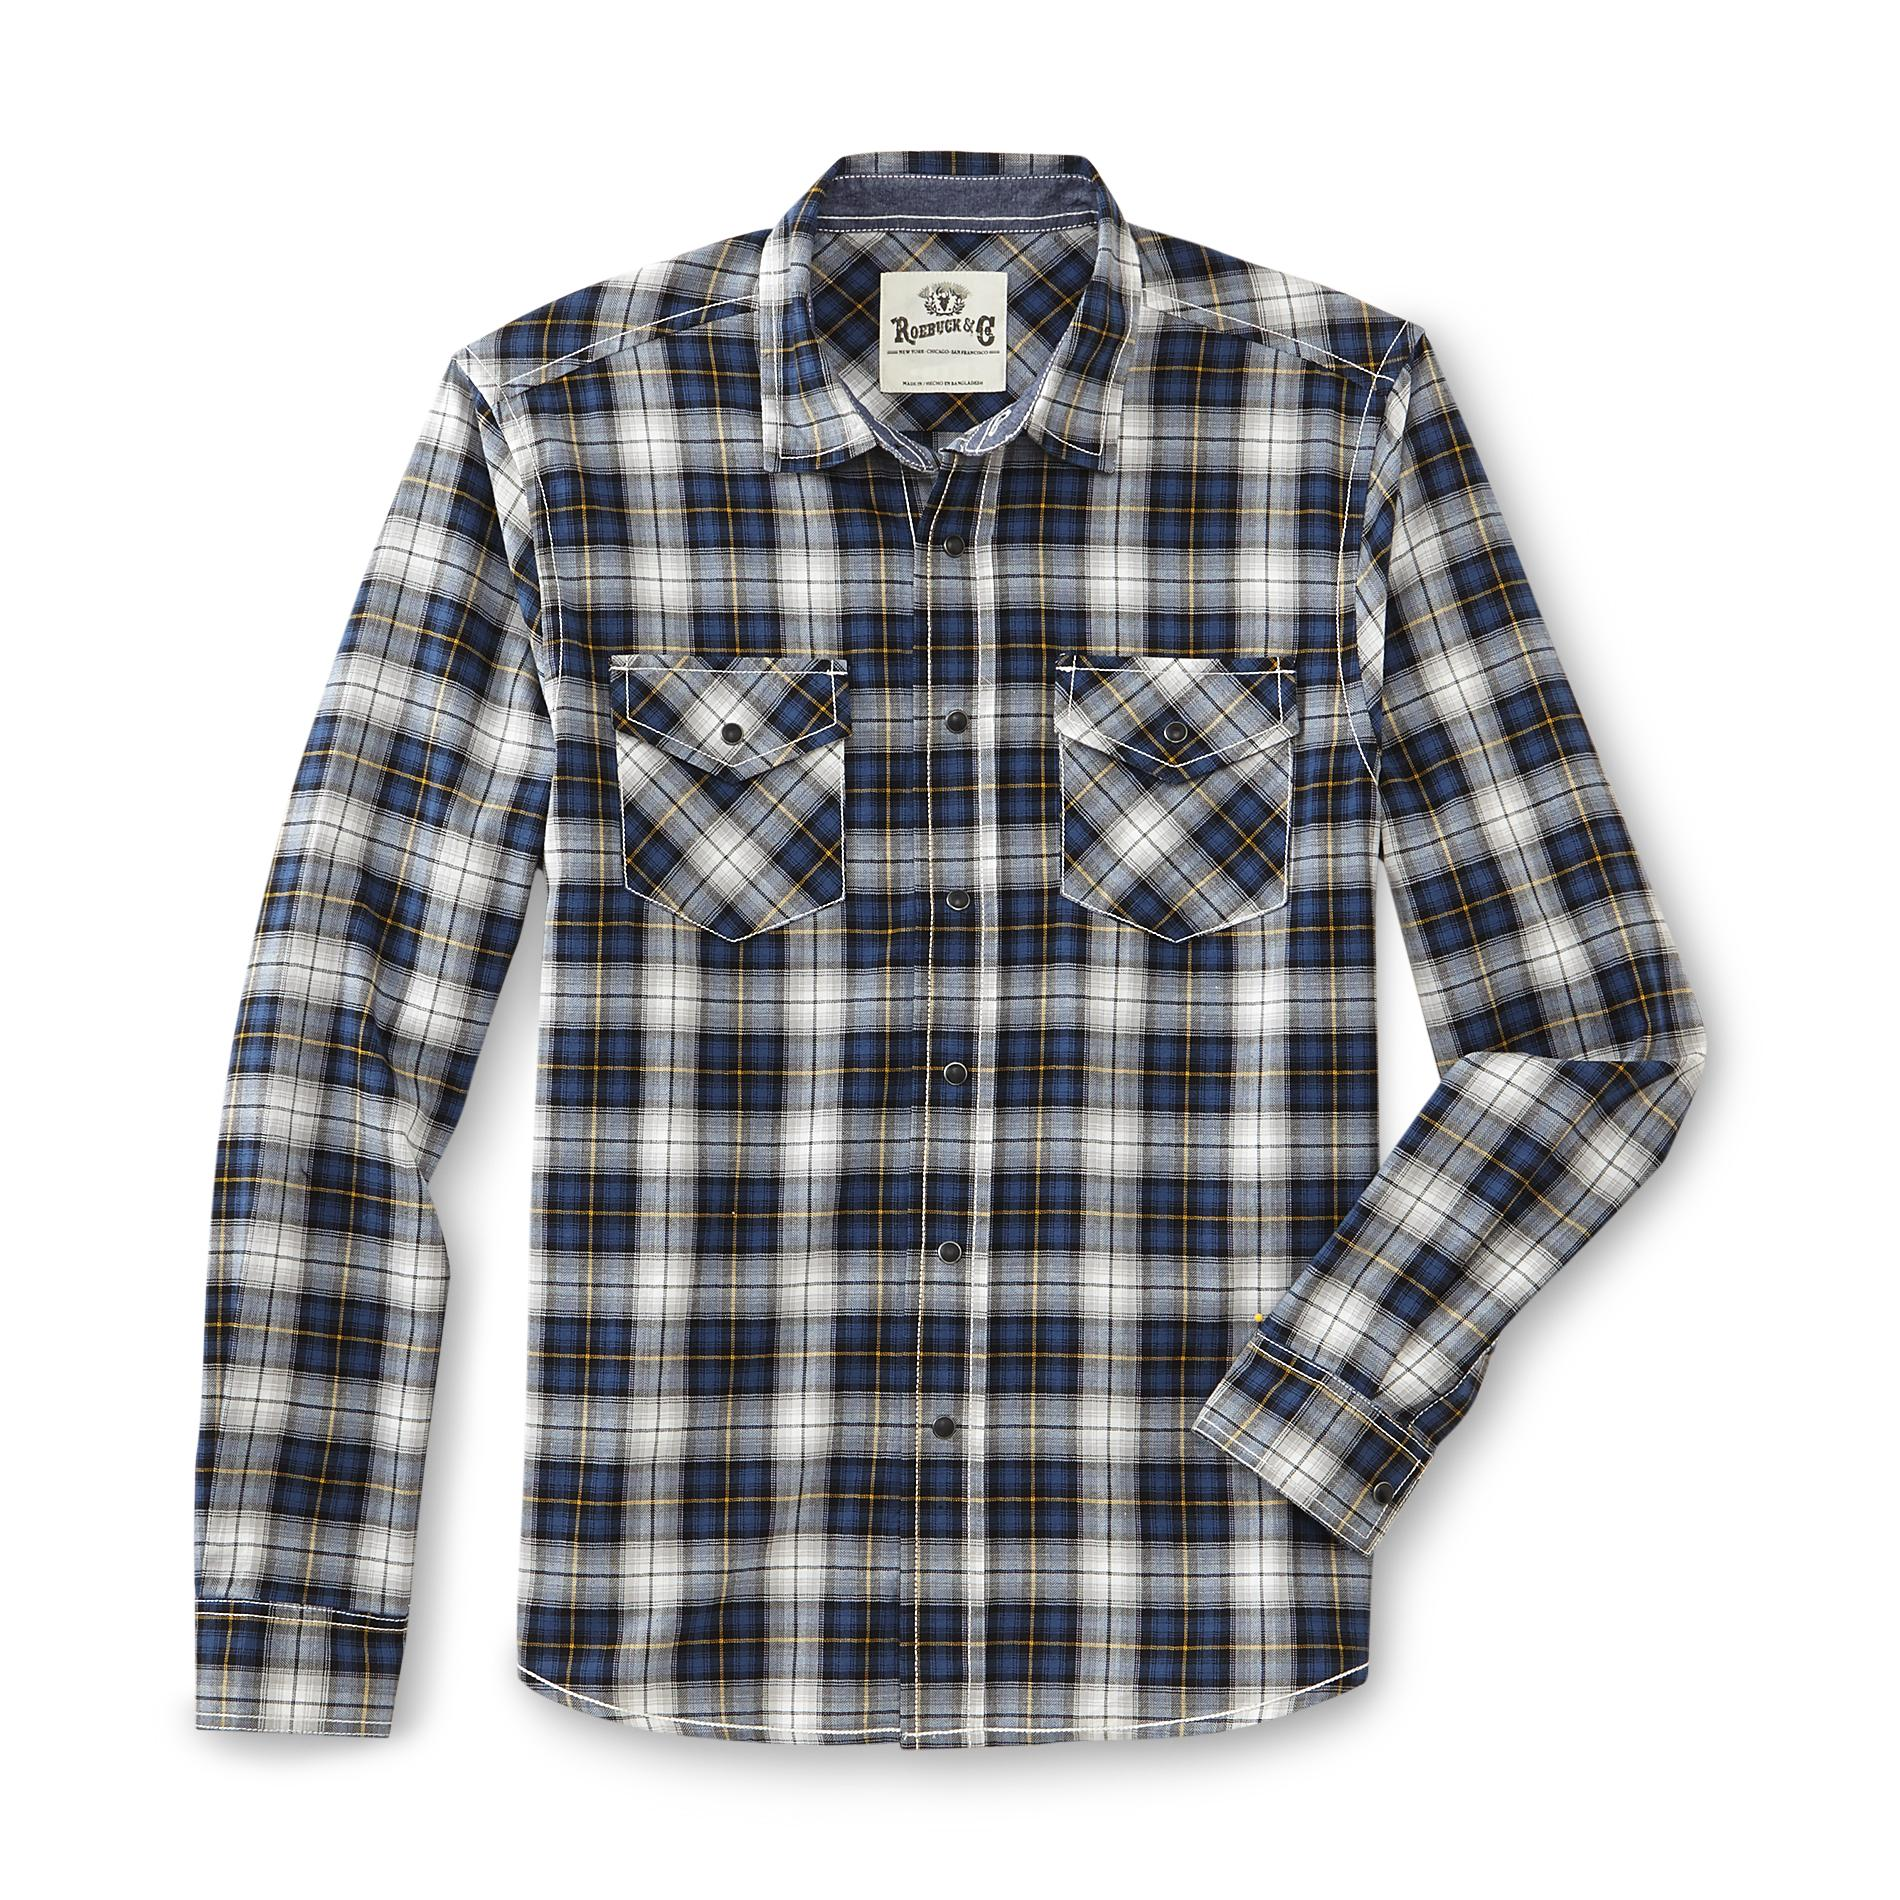 Roebuck & Co. Young Men's Snap-Front Casual Shirt - Plaid